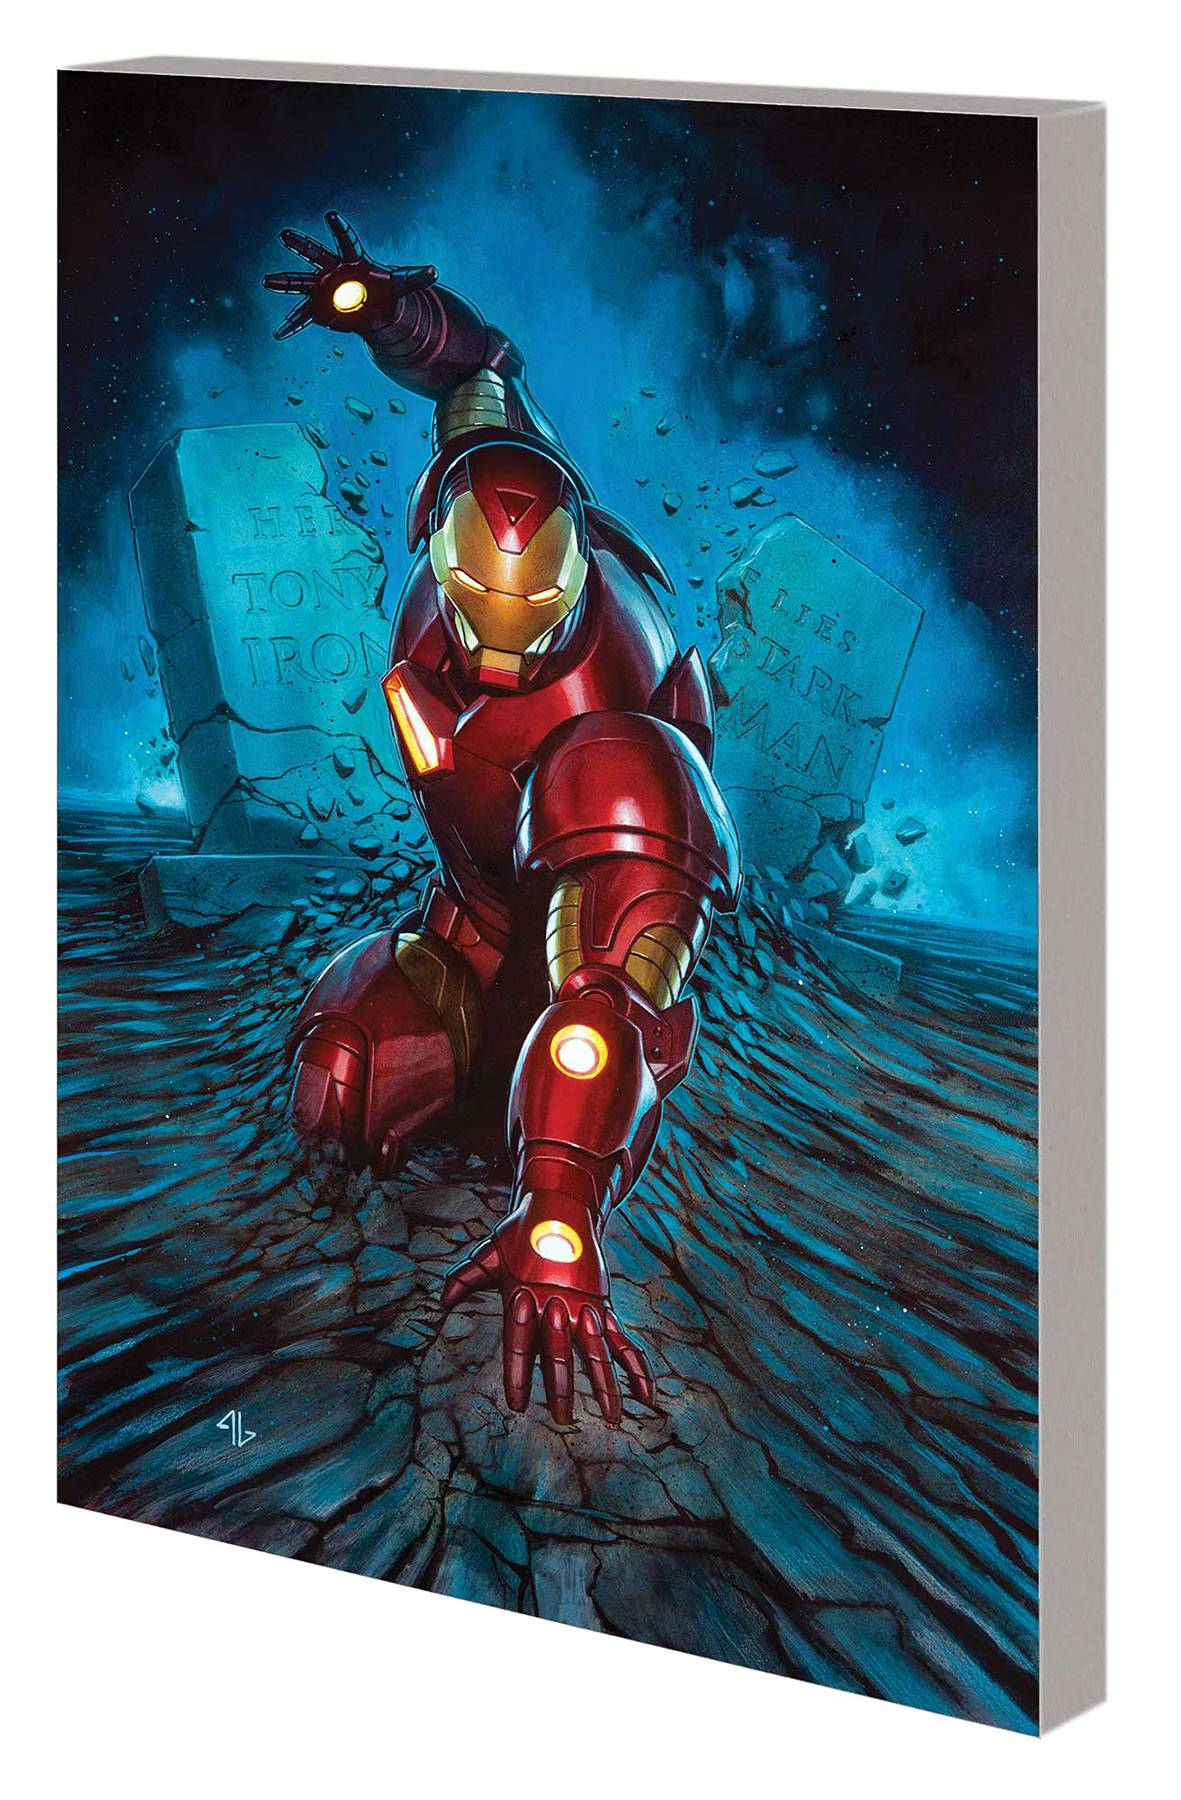 MARVEL MONOGRAPH TP ART OF ADI GRANOV.jpg